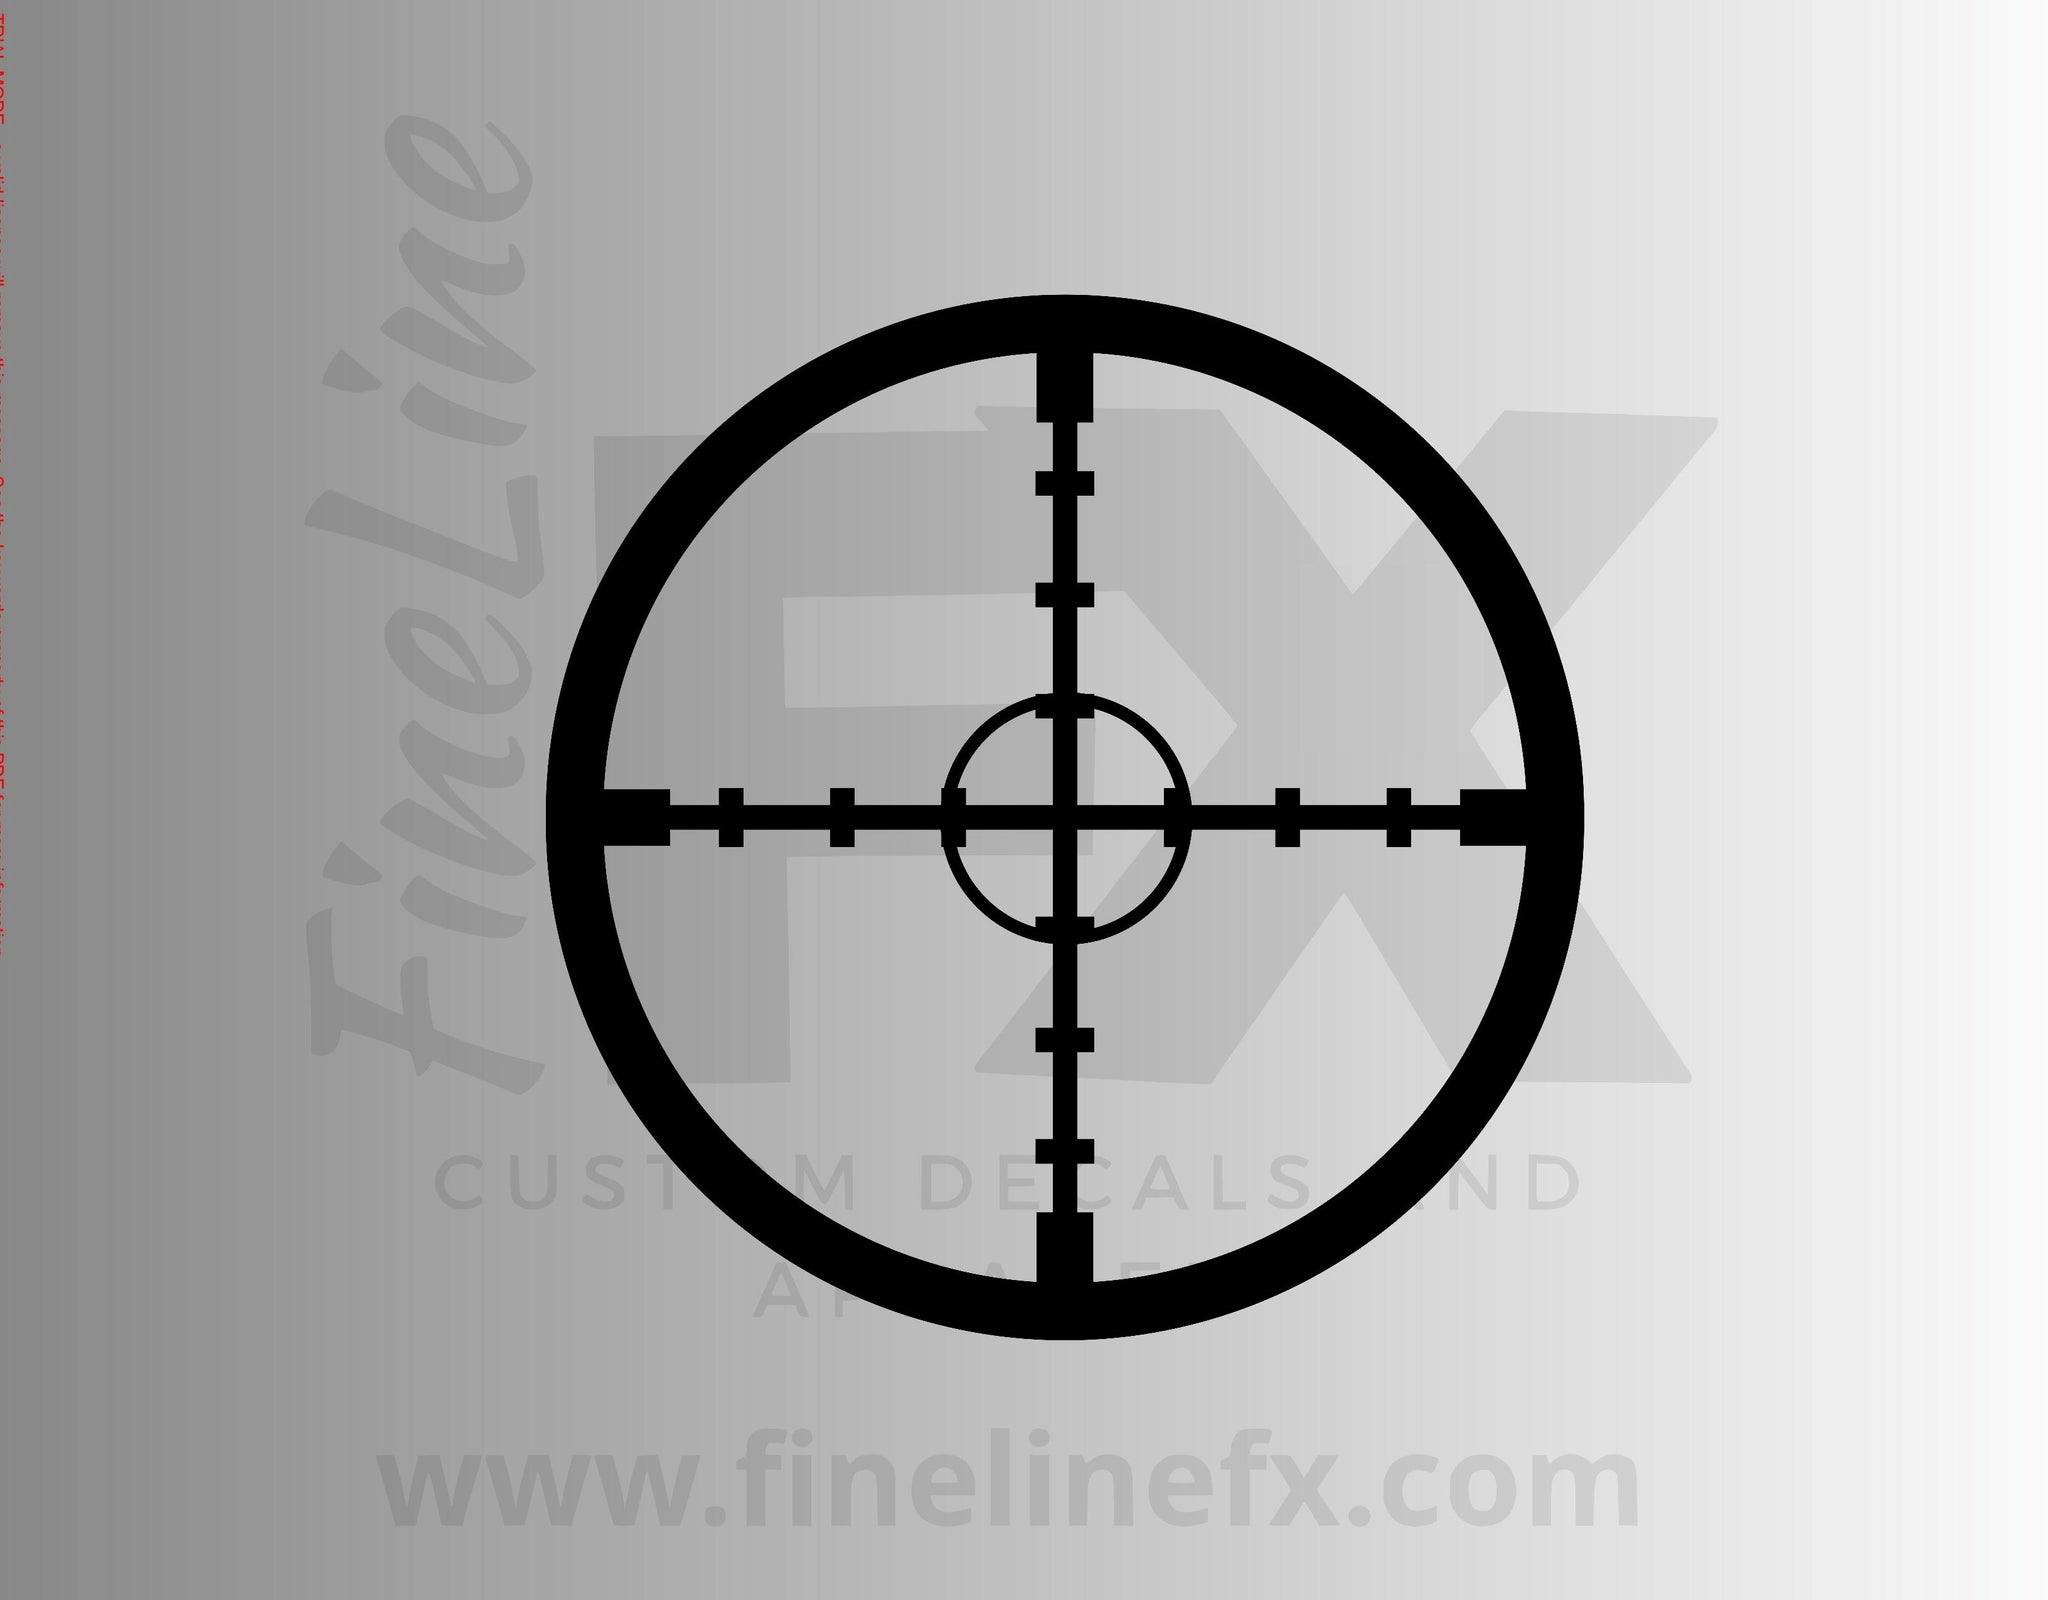 Rifle Scope Crosshairs Target Vinyl Decal Sticker